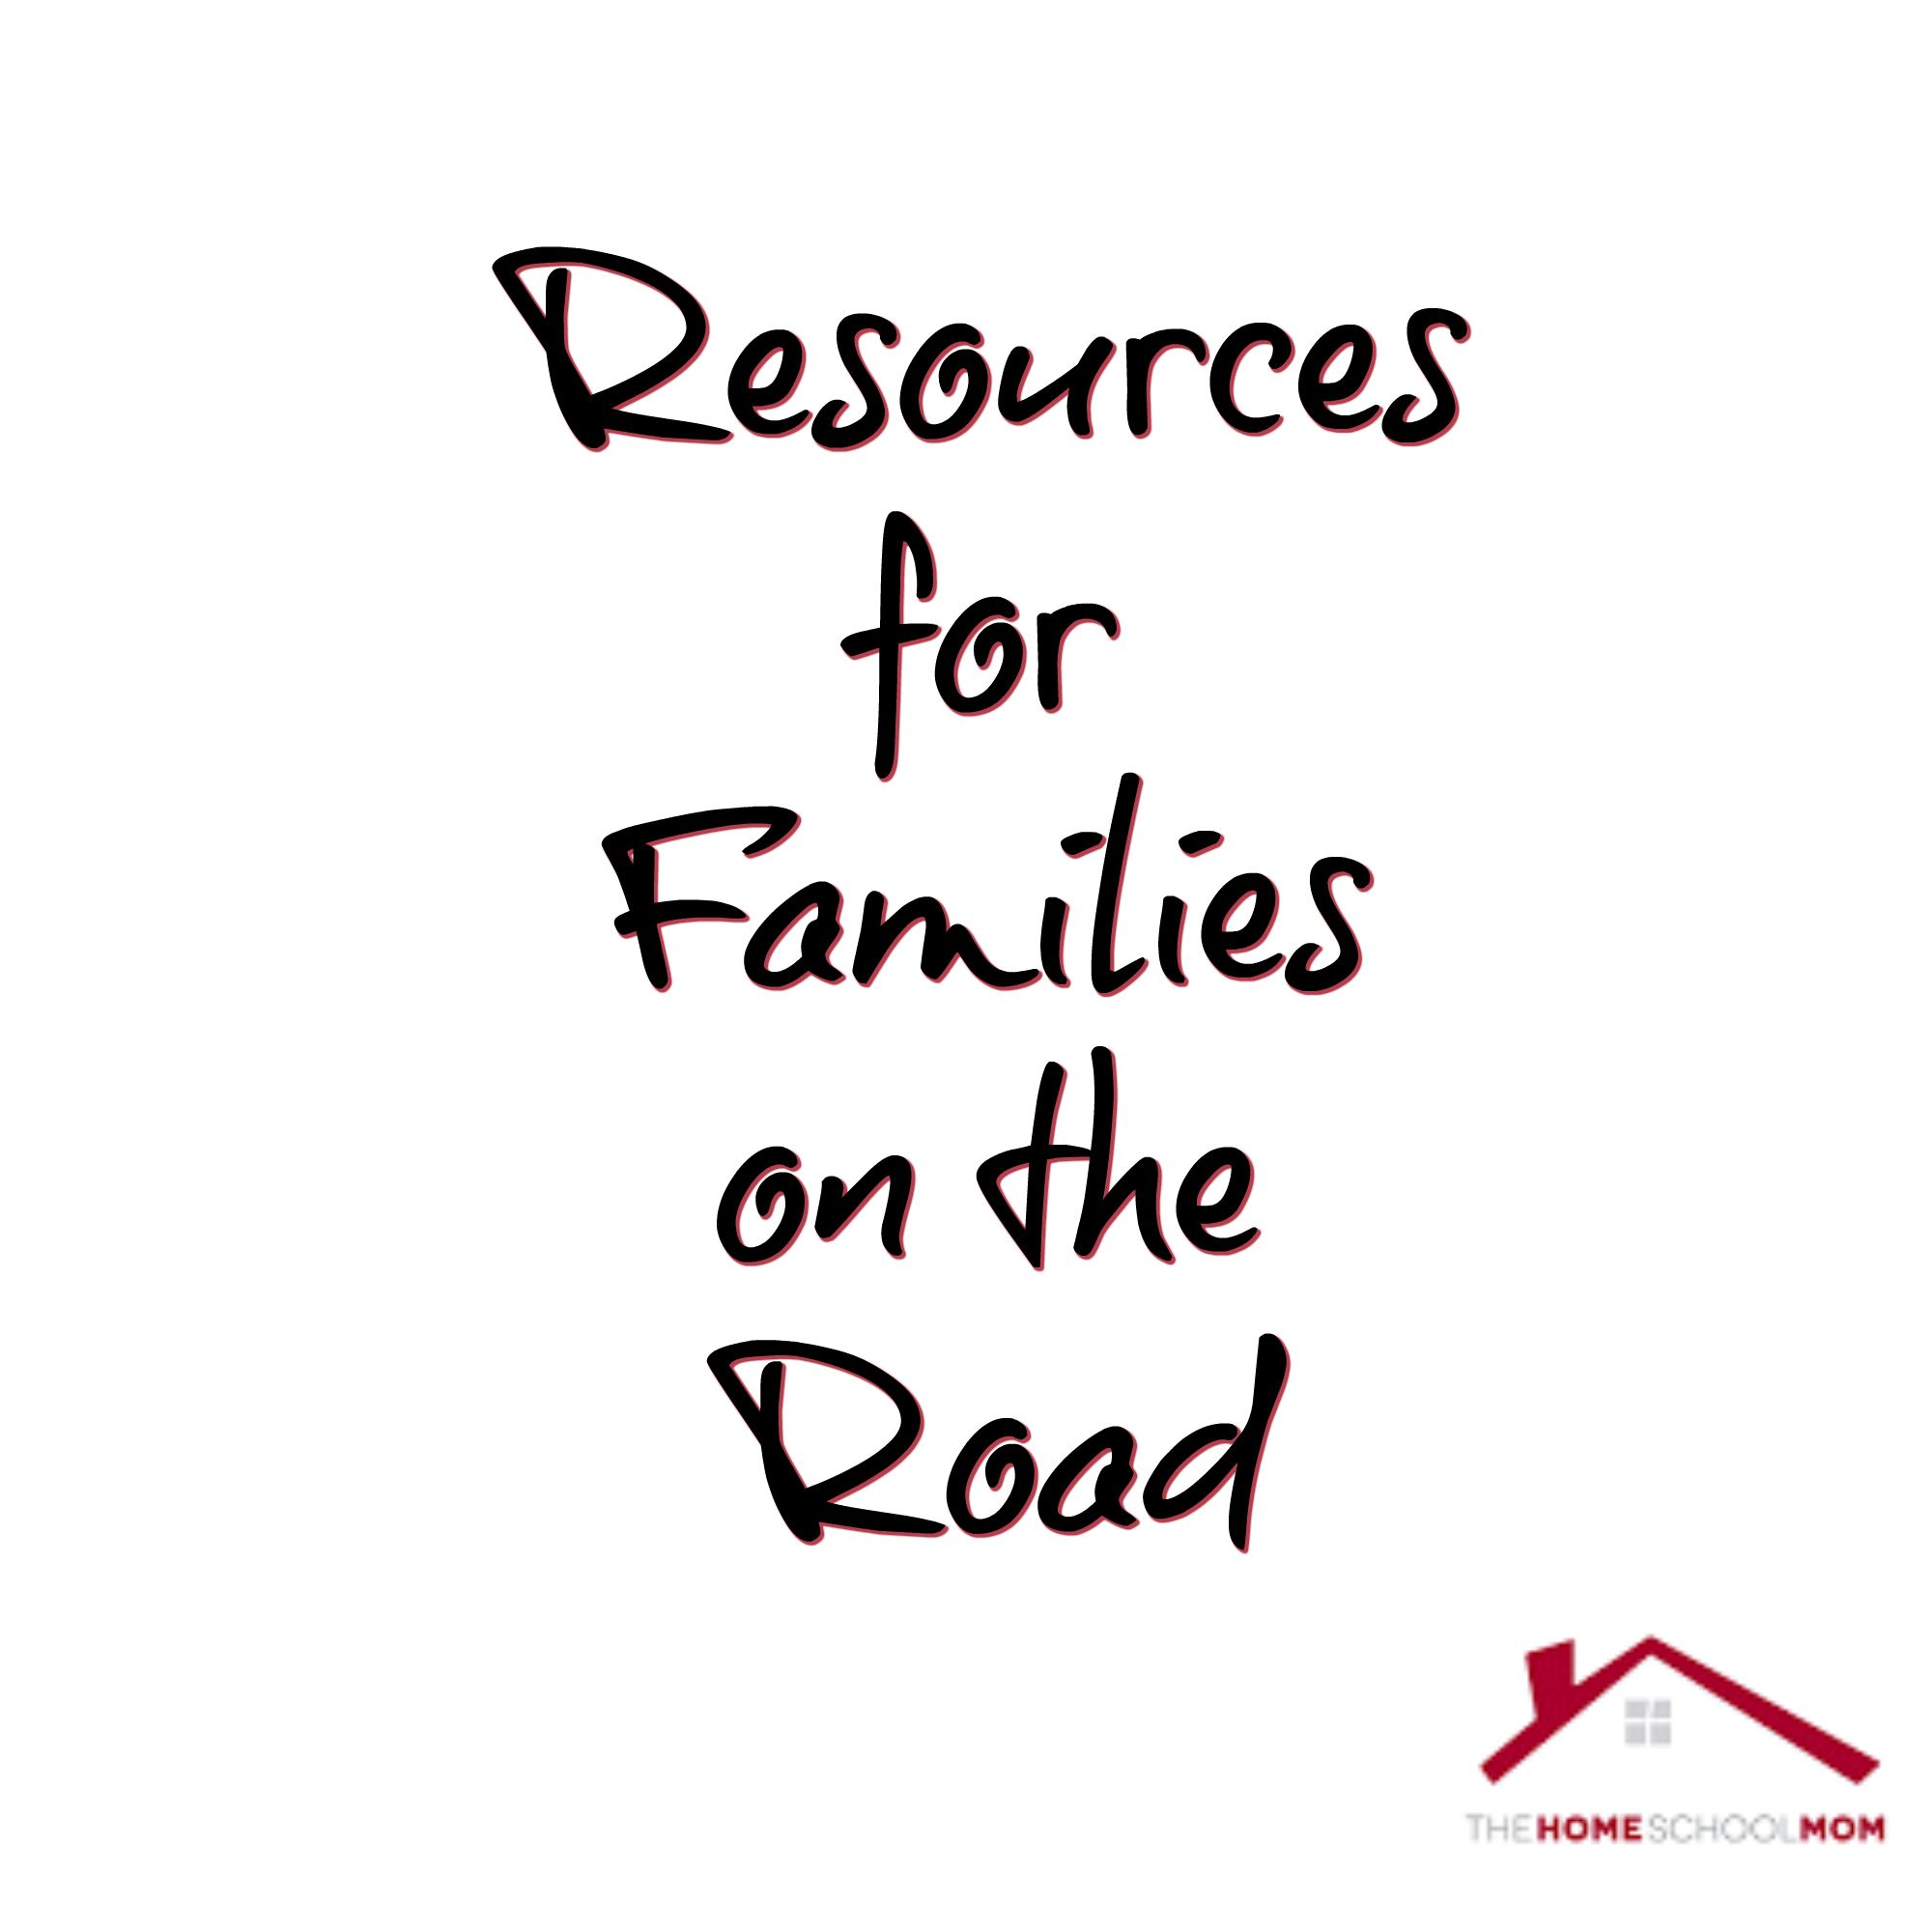 Homeschooling on the Road- Resources for Families on the Road #homeschoolingontheroad #roadschooling